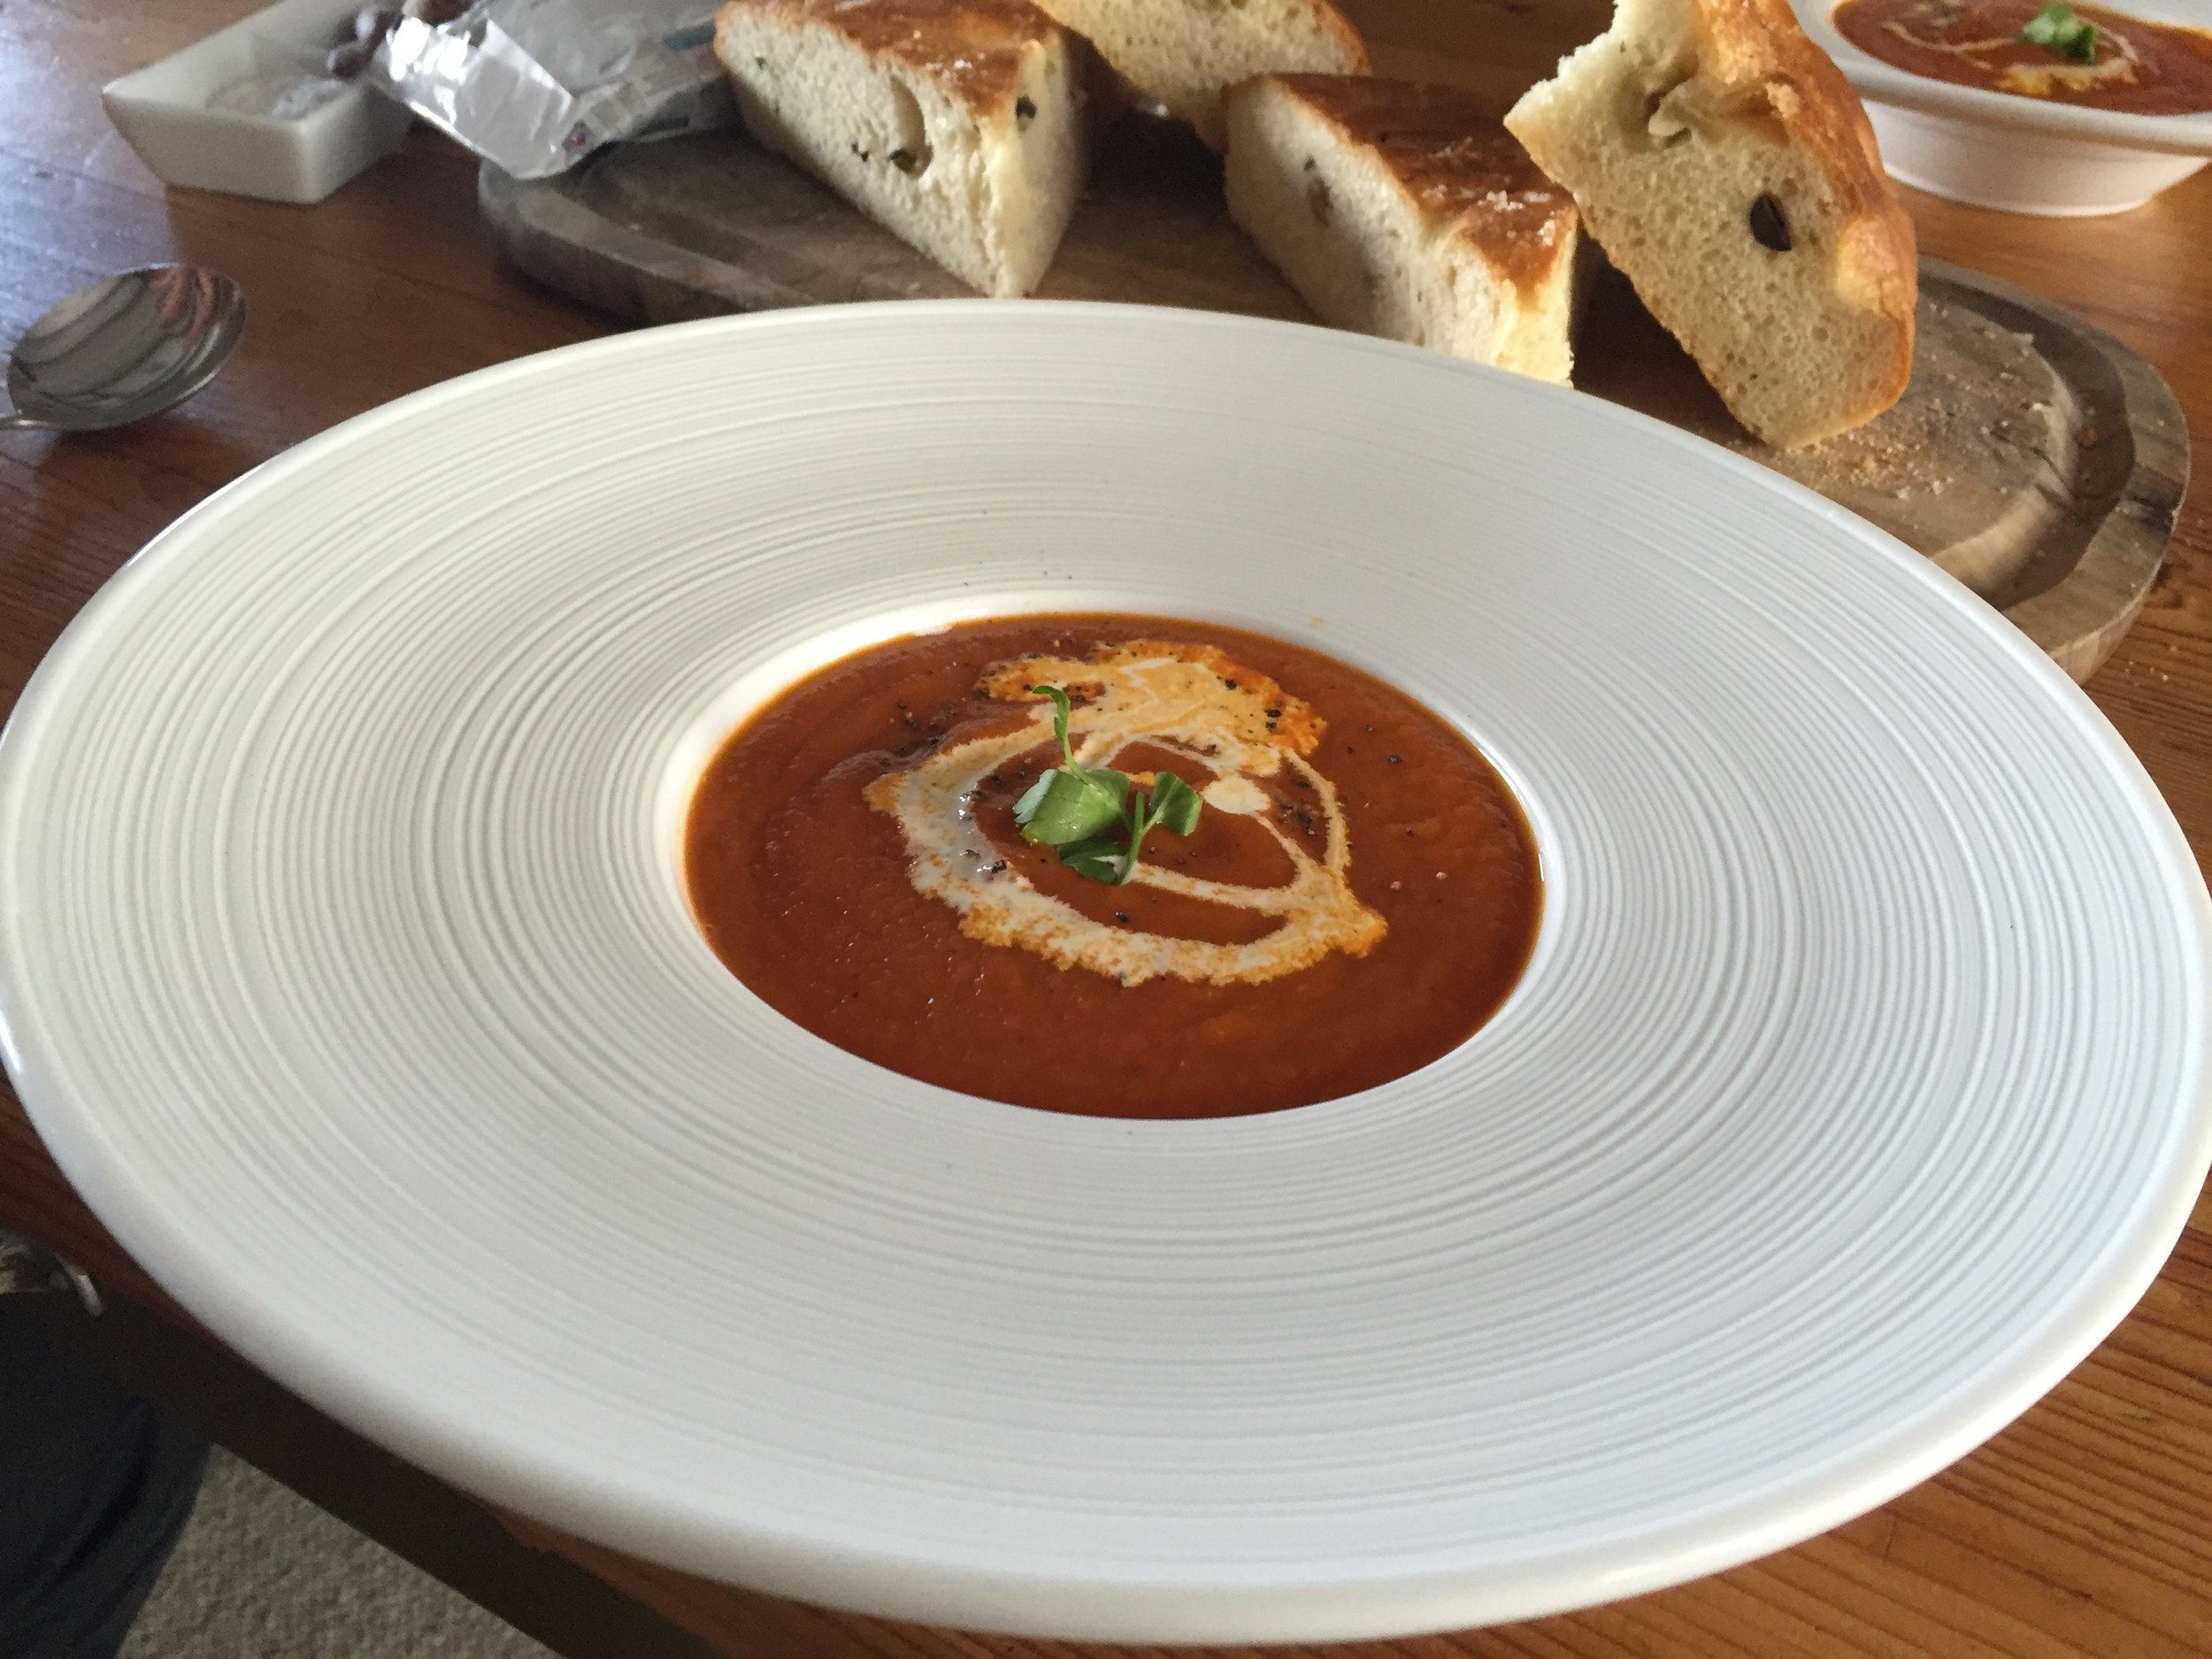 Roasted red pepper and tomato soup with creme fraiche and olive foccacia